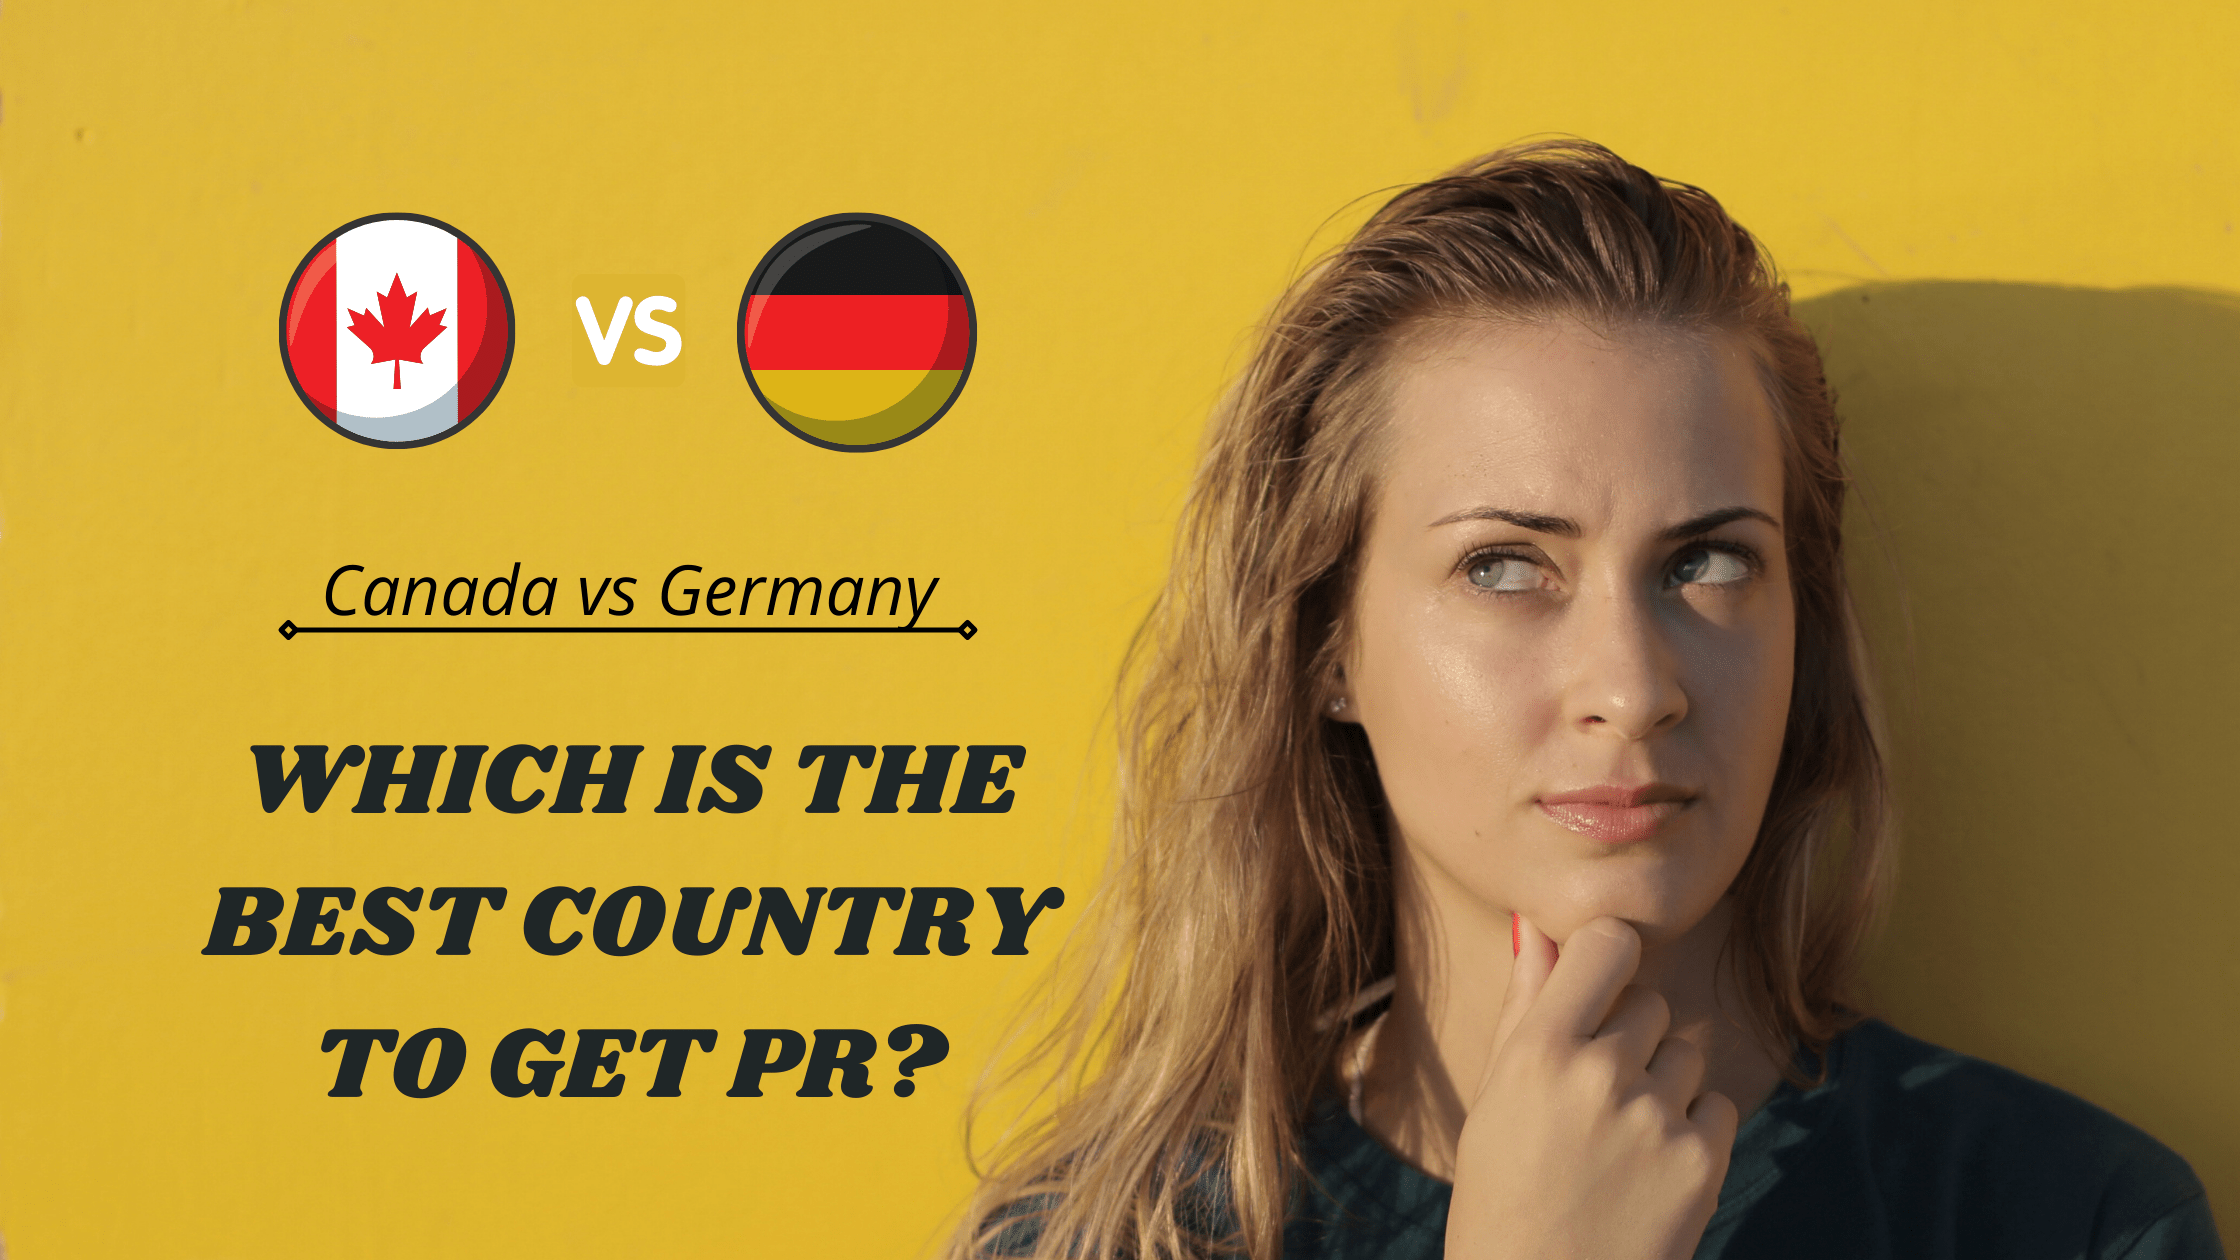 Canada vs Germany: Which is the best country to get PR?